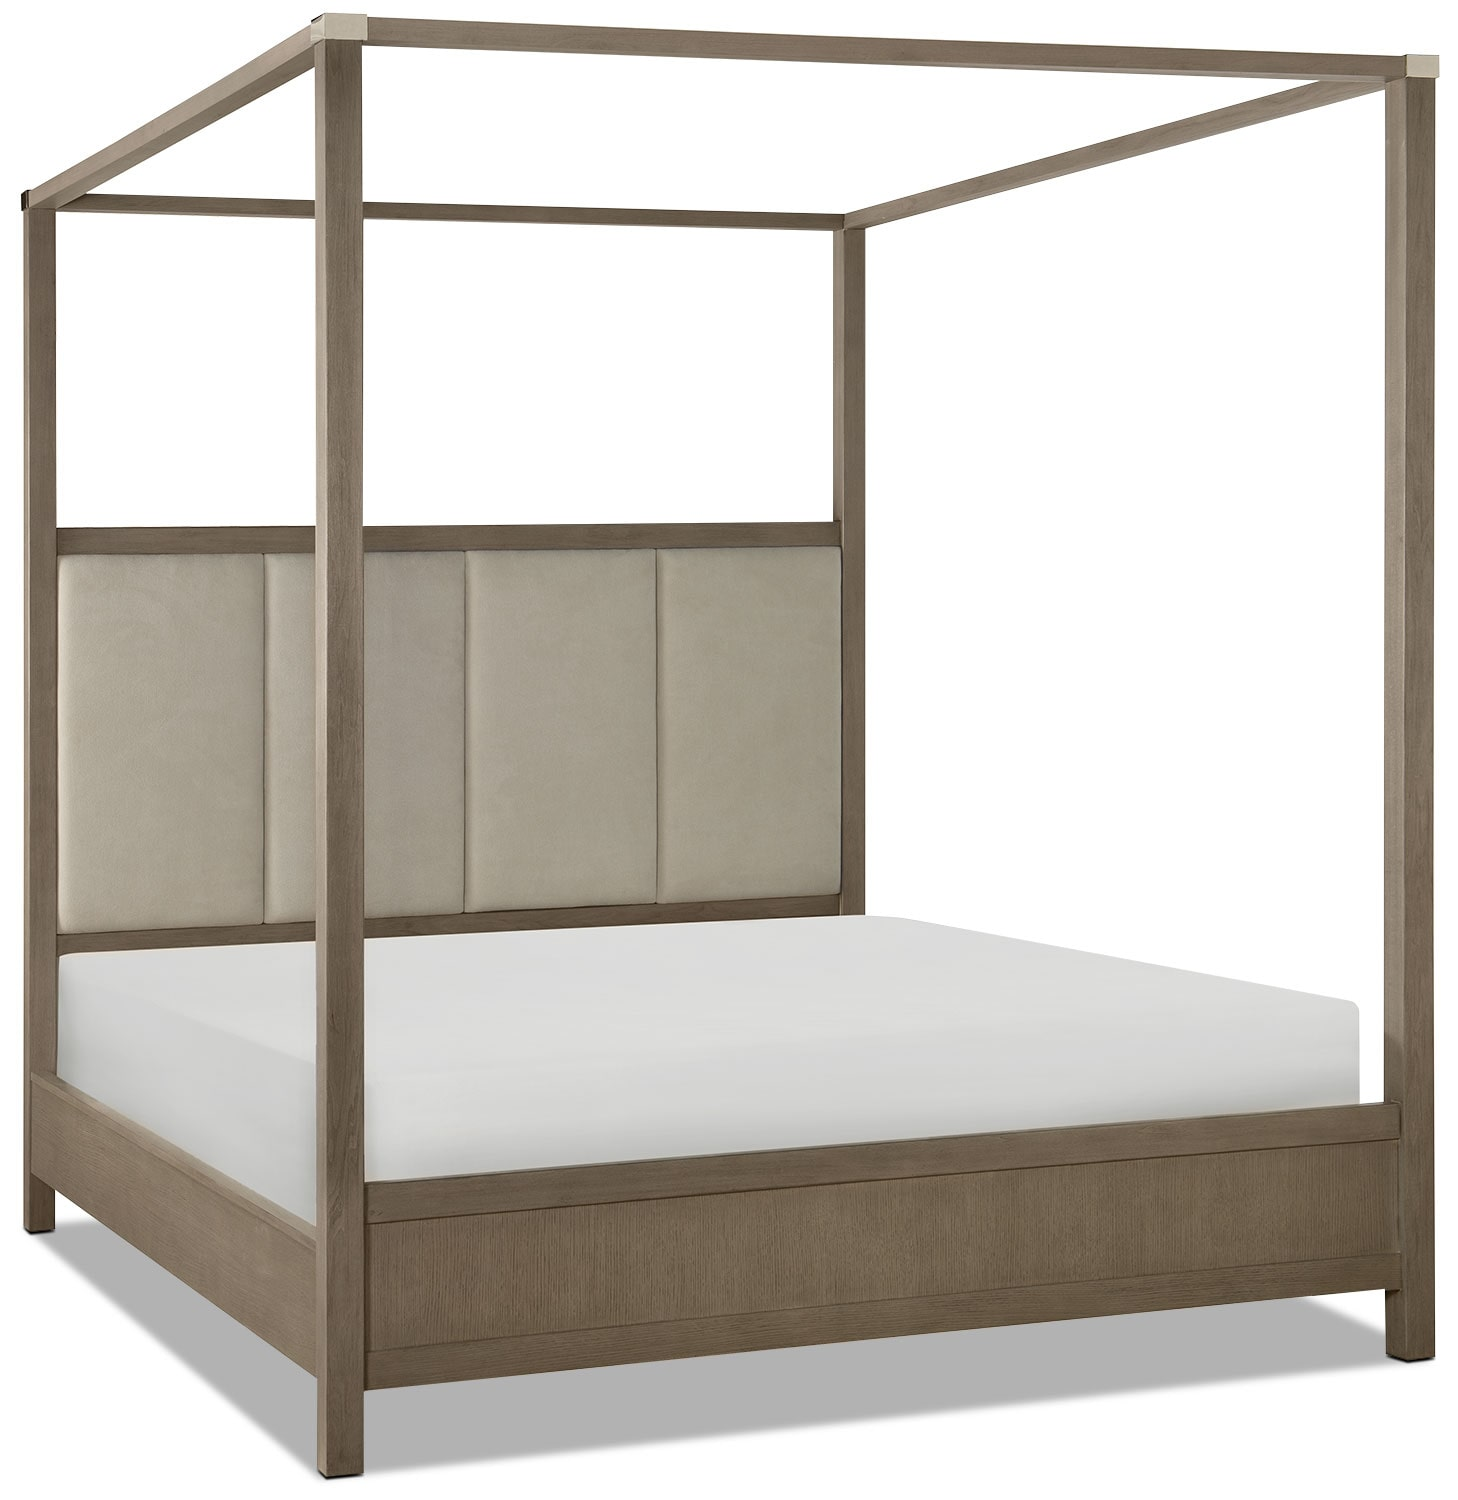 Bedroom Furniture - Rachael Ray Highline Queen Canopy Bed - Greige